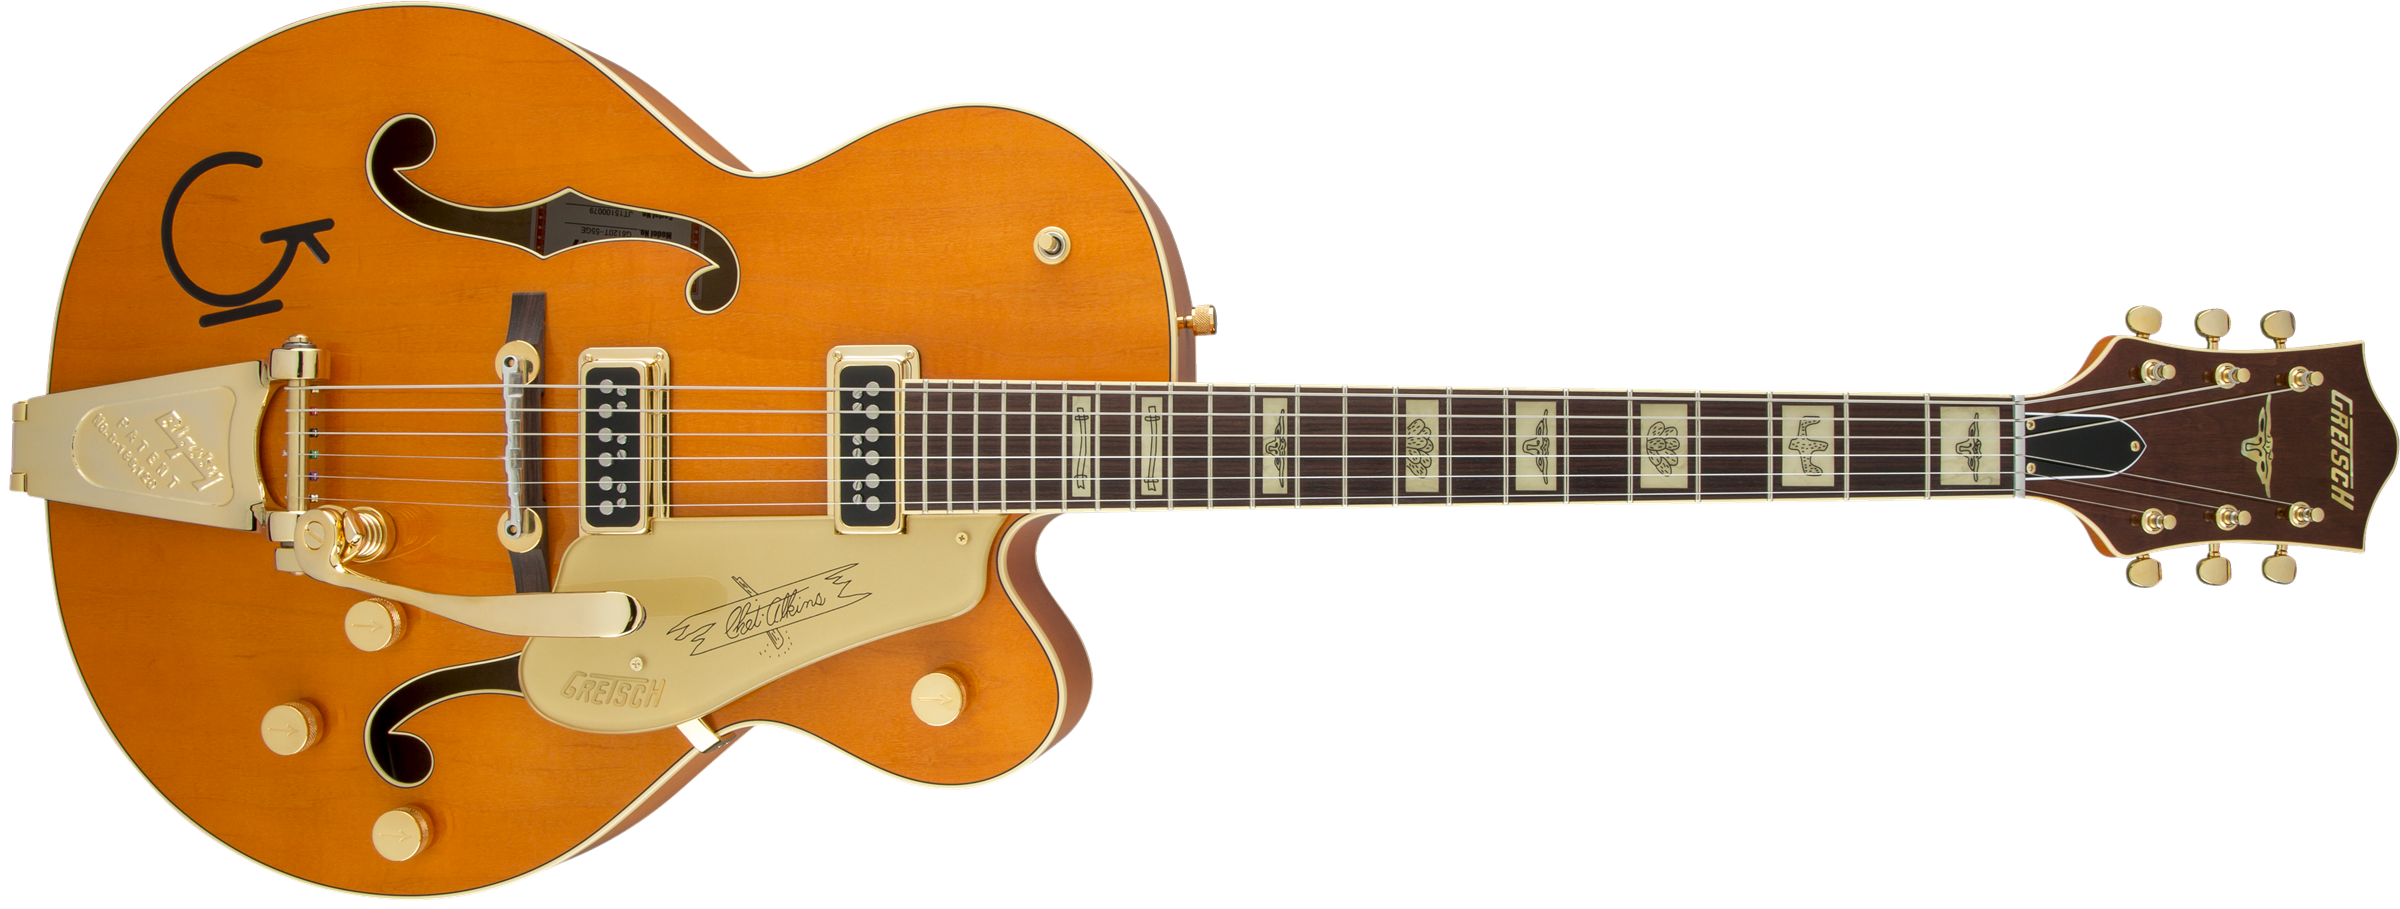 GRETSCH-G6120T-55-Vintage-Select-Edition-55-Chet-Atkins-Hollow-Body-with-Bigsby-TV-Jones-Vintage-Orange-Stain-Lacquer-sku-571000147